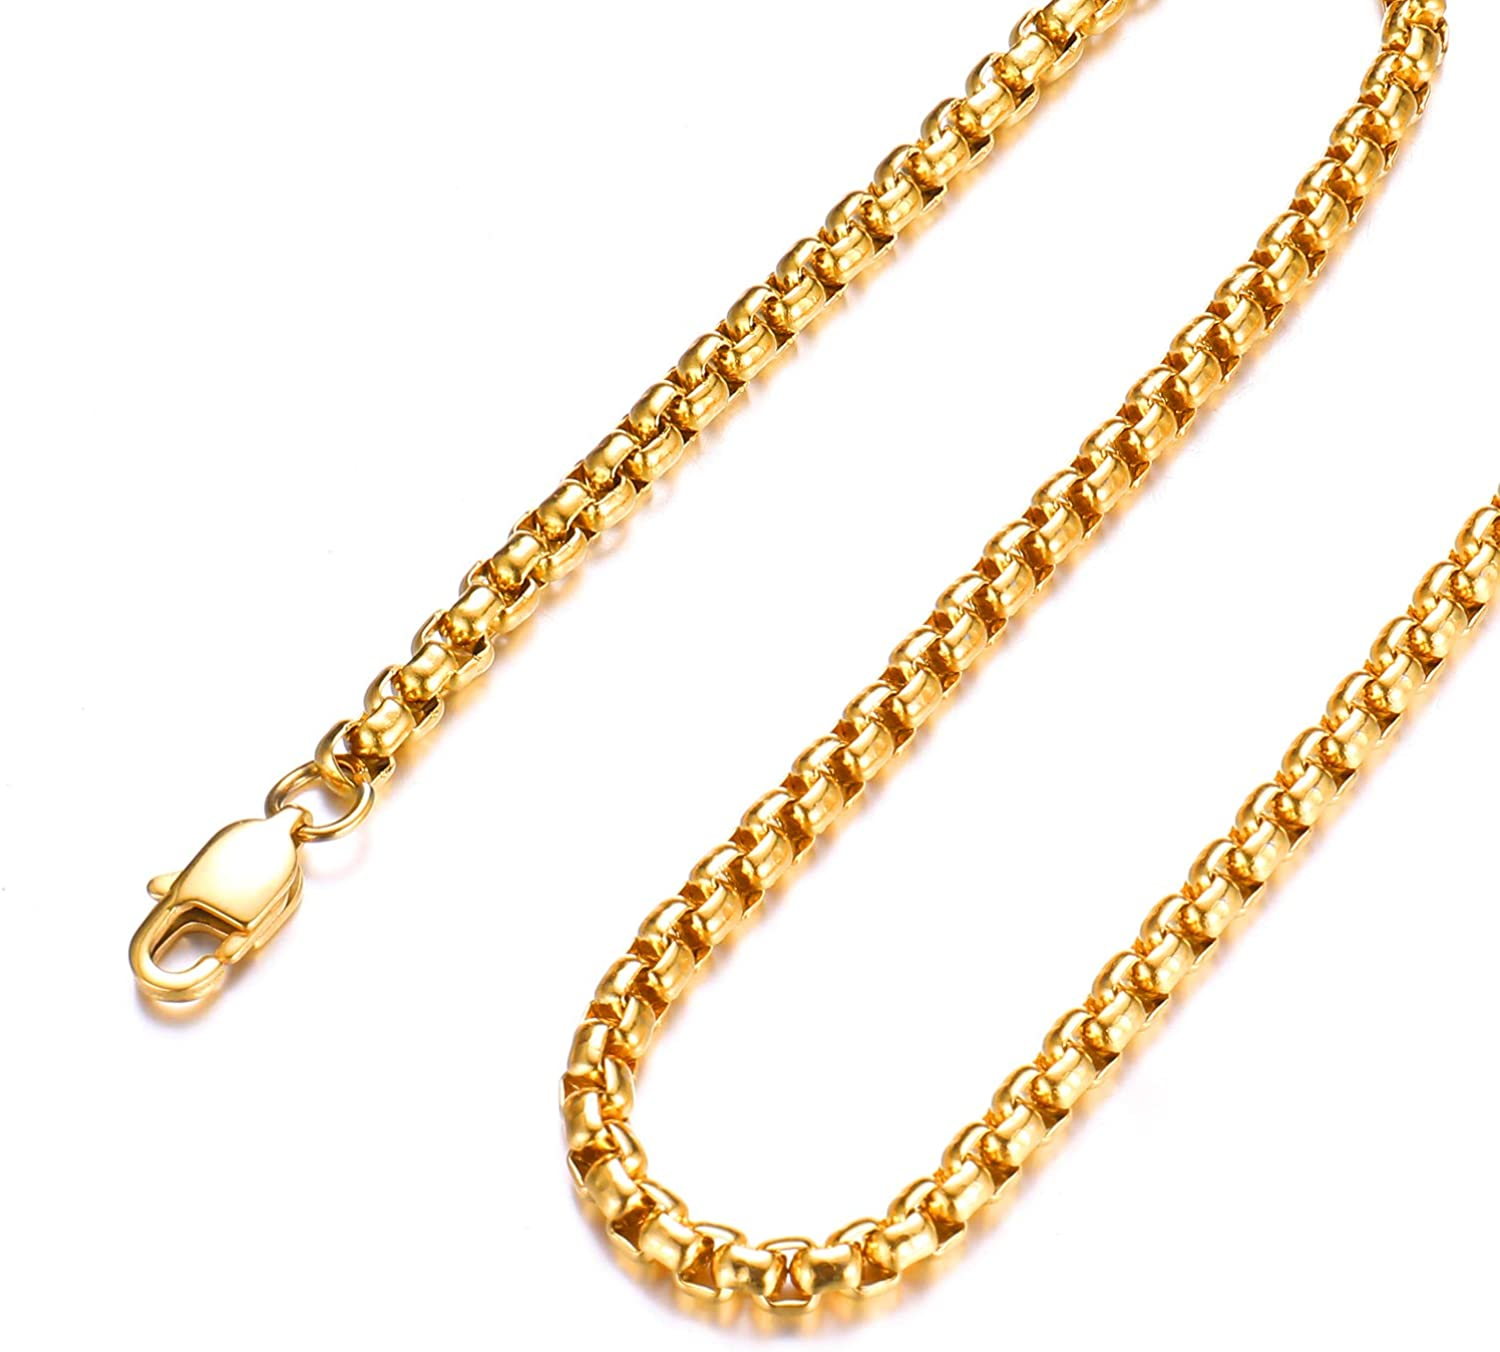 Amazon Com Feel Style Men Necklace Stainless Steel Rolo Chain Gold Plated Rope Chain Jewelry 2mm 20 Inch Jewelry